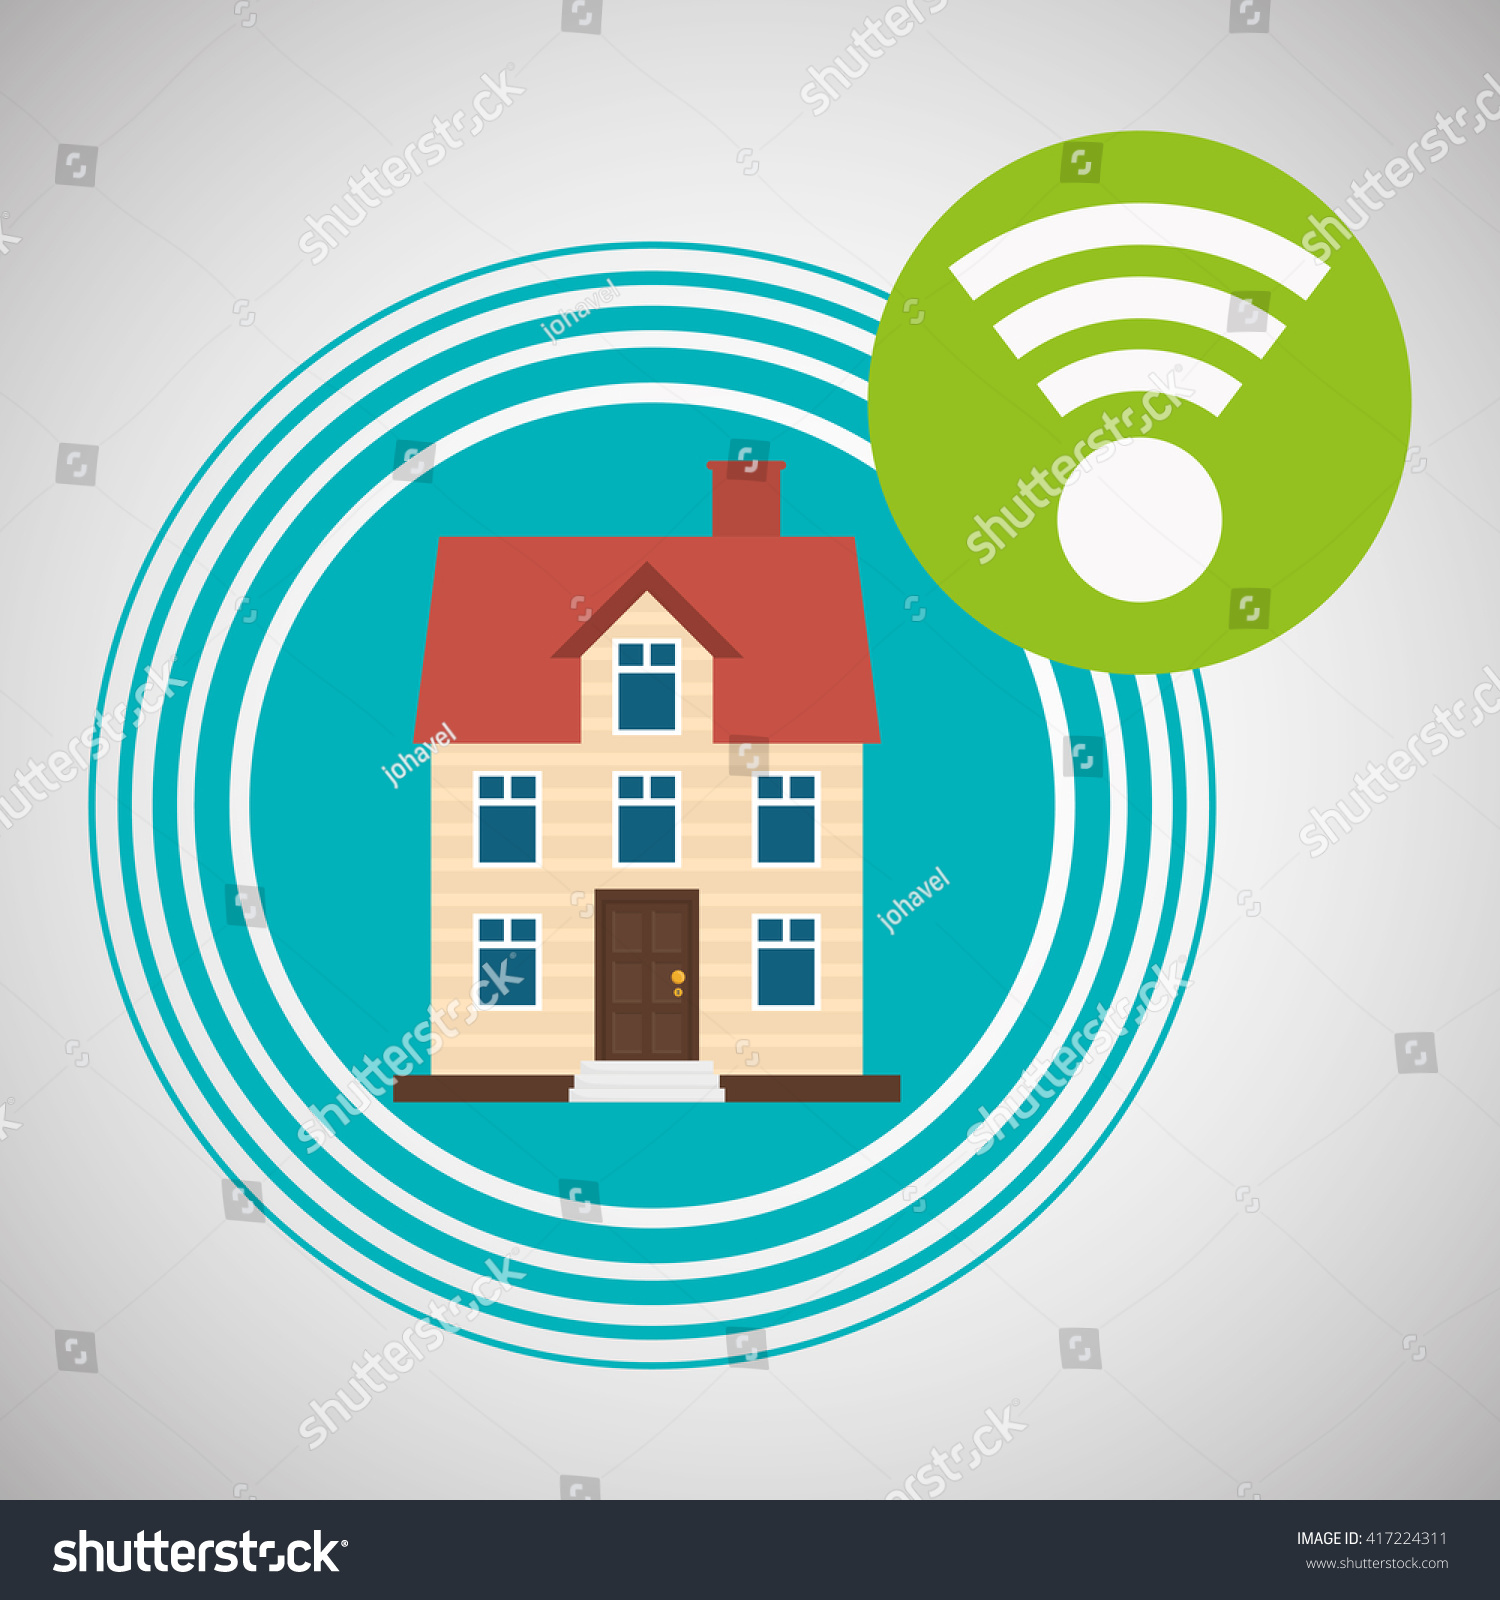 Home automation design. smart house icon. house concept, vector ...